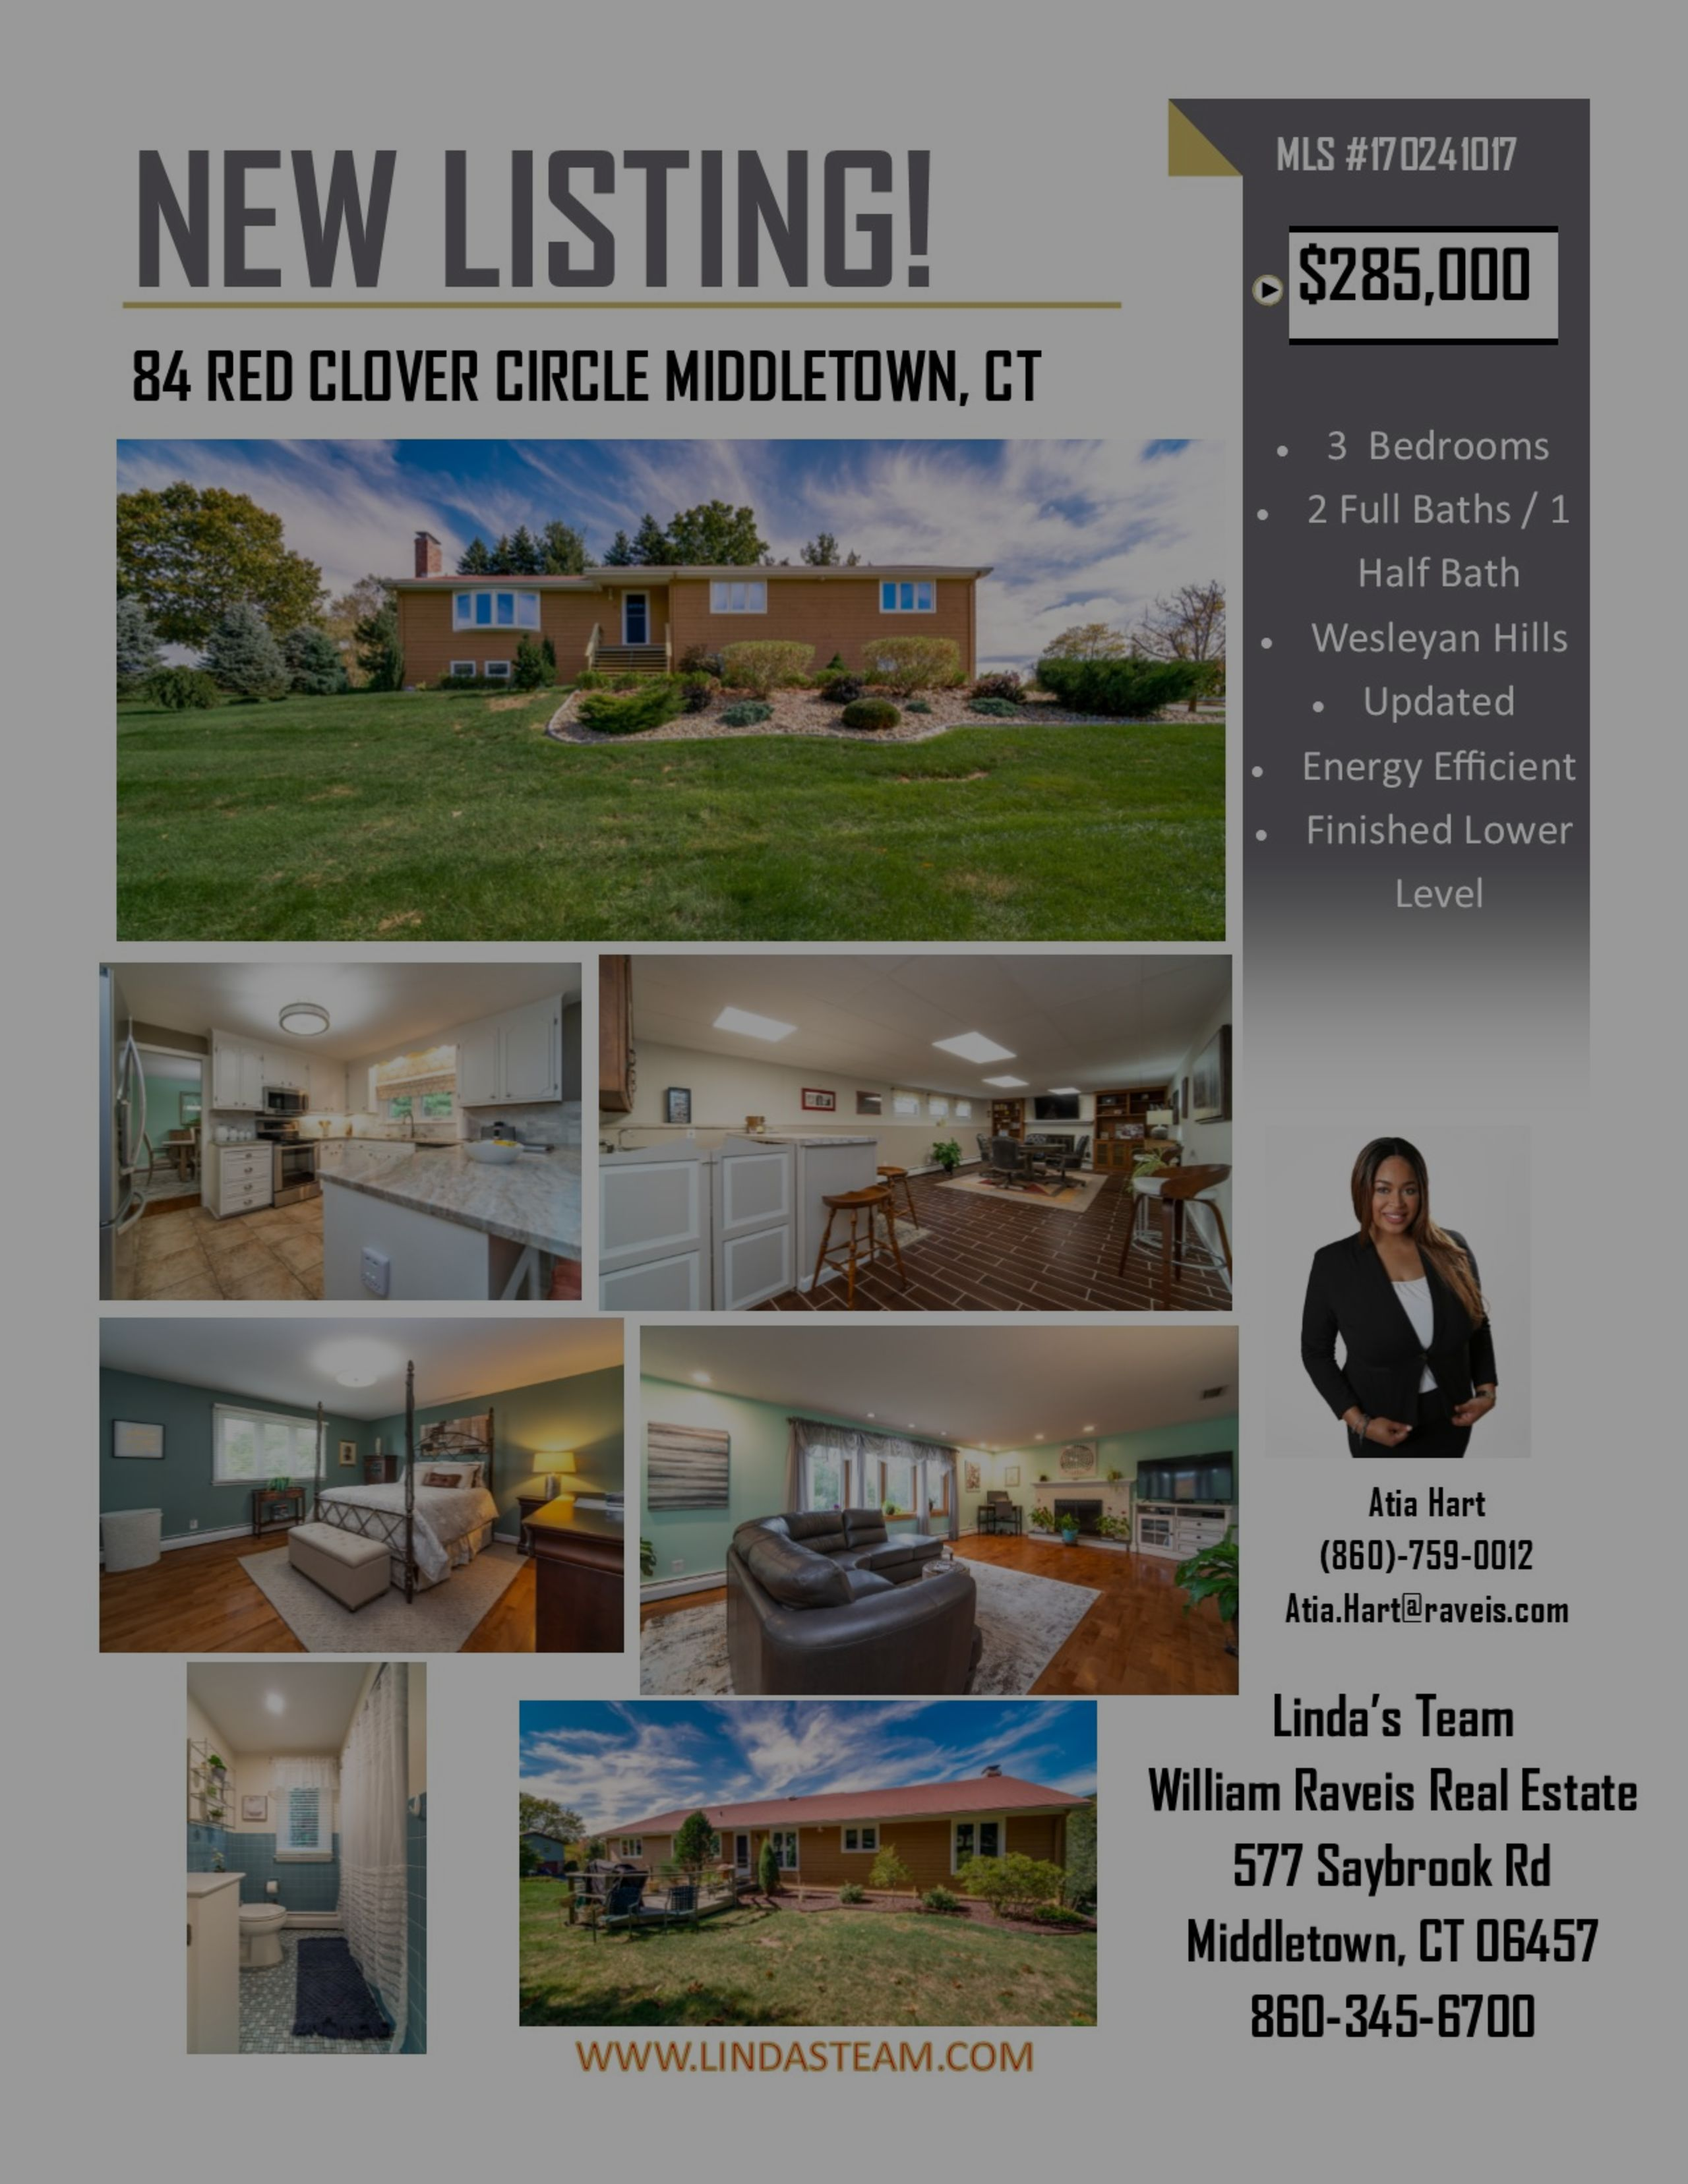 New Listing in Middletown